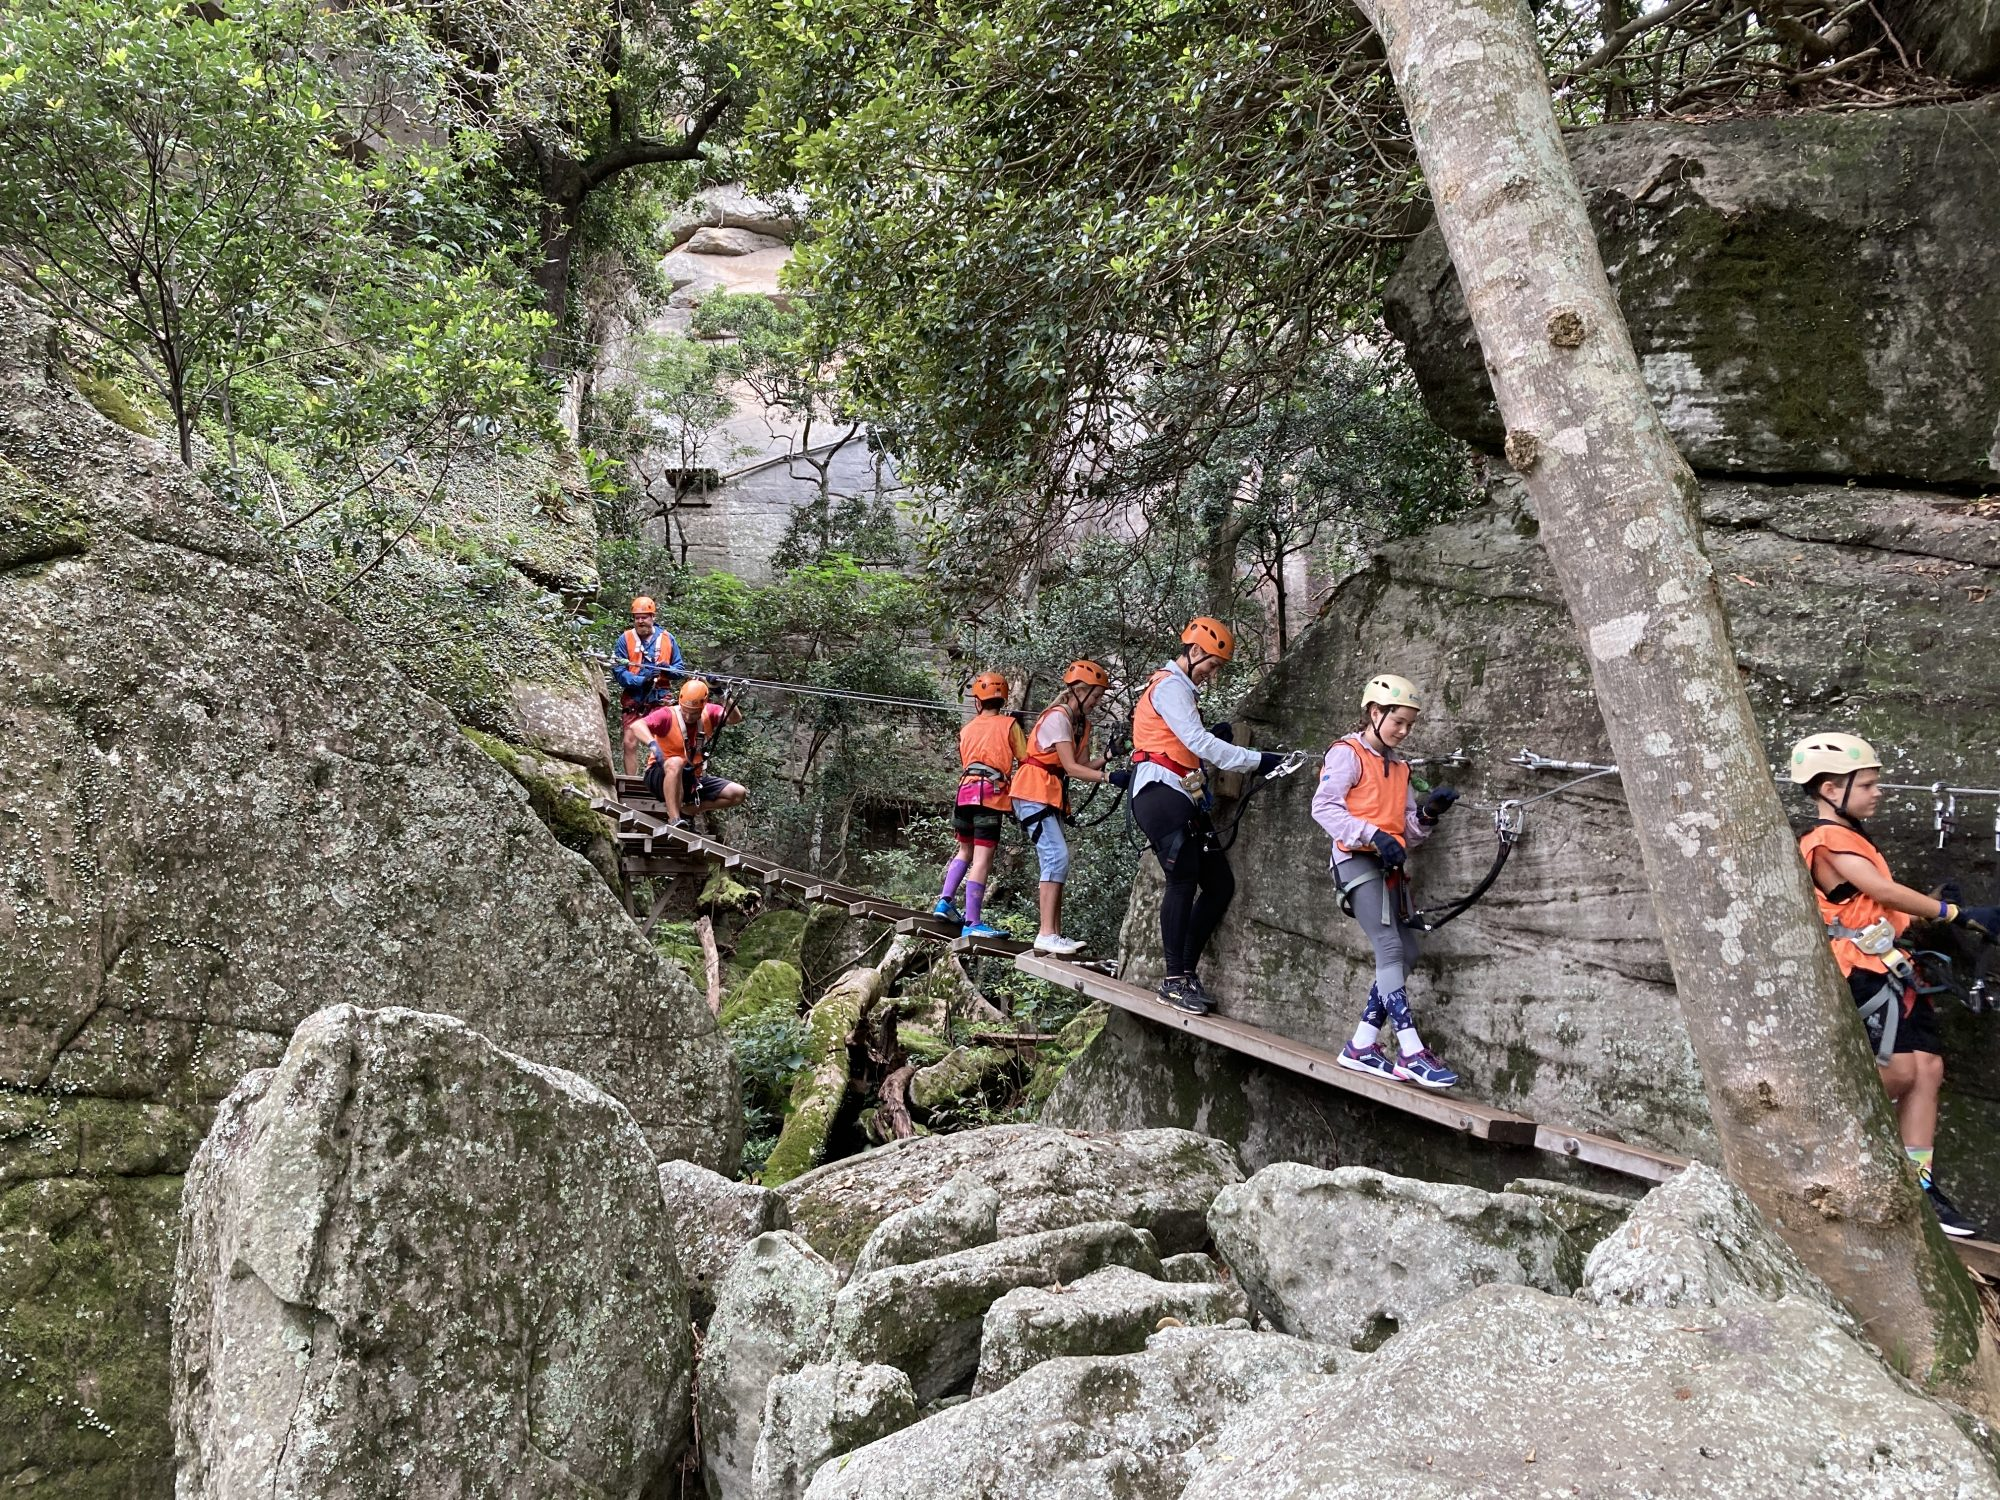 Family fun amongst the tree tops! | Shoalhaven Region Activity Wrap Up